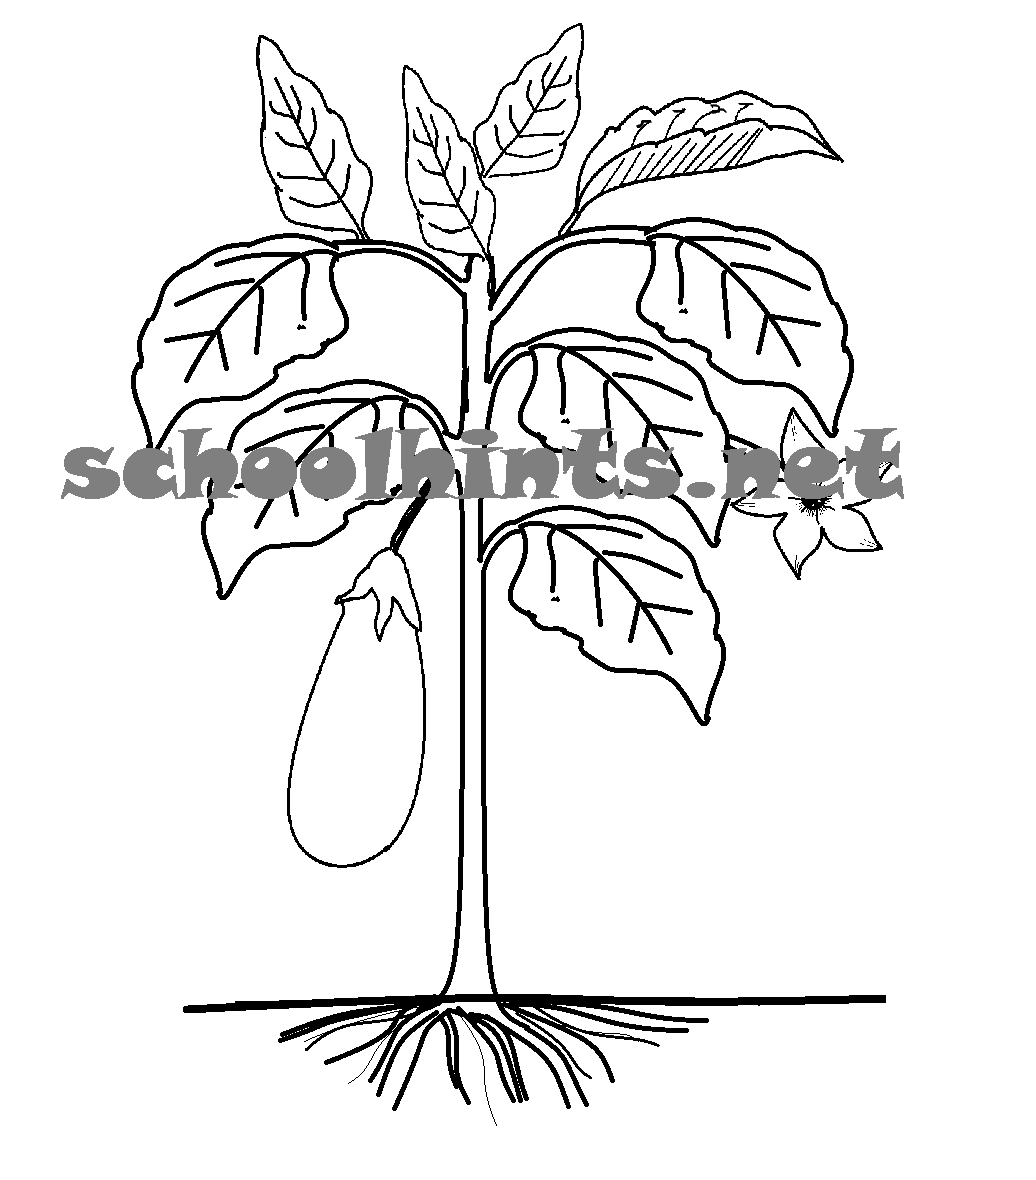 1036x1180 Tree Coloring Pages With Roots And Stems Gallery Coloring